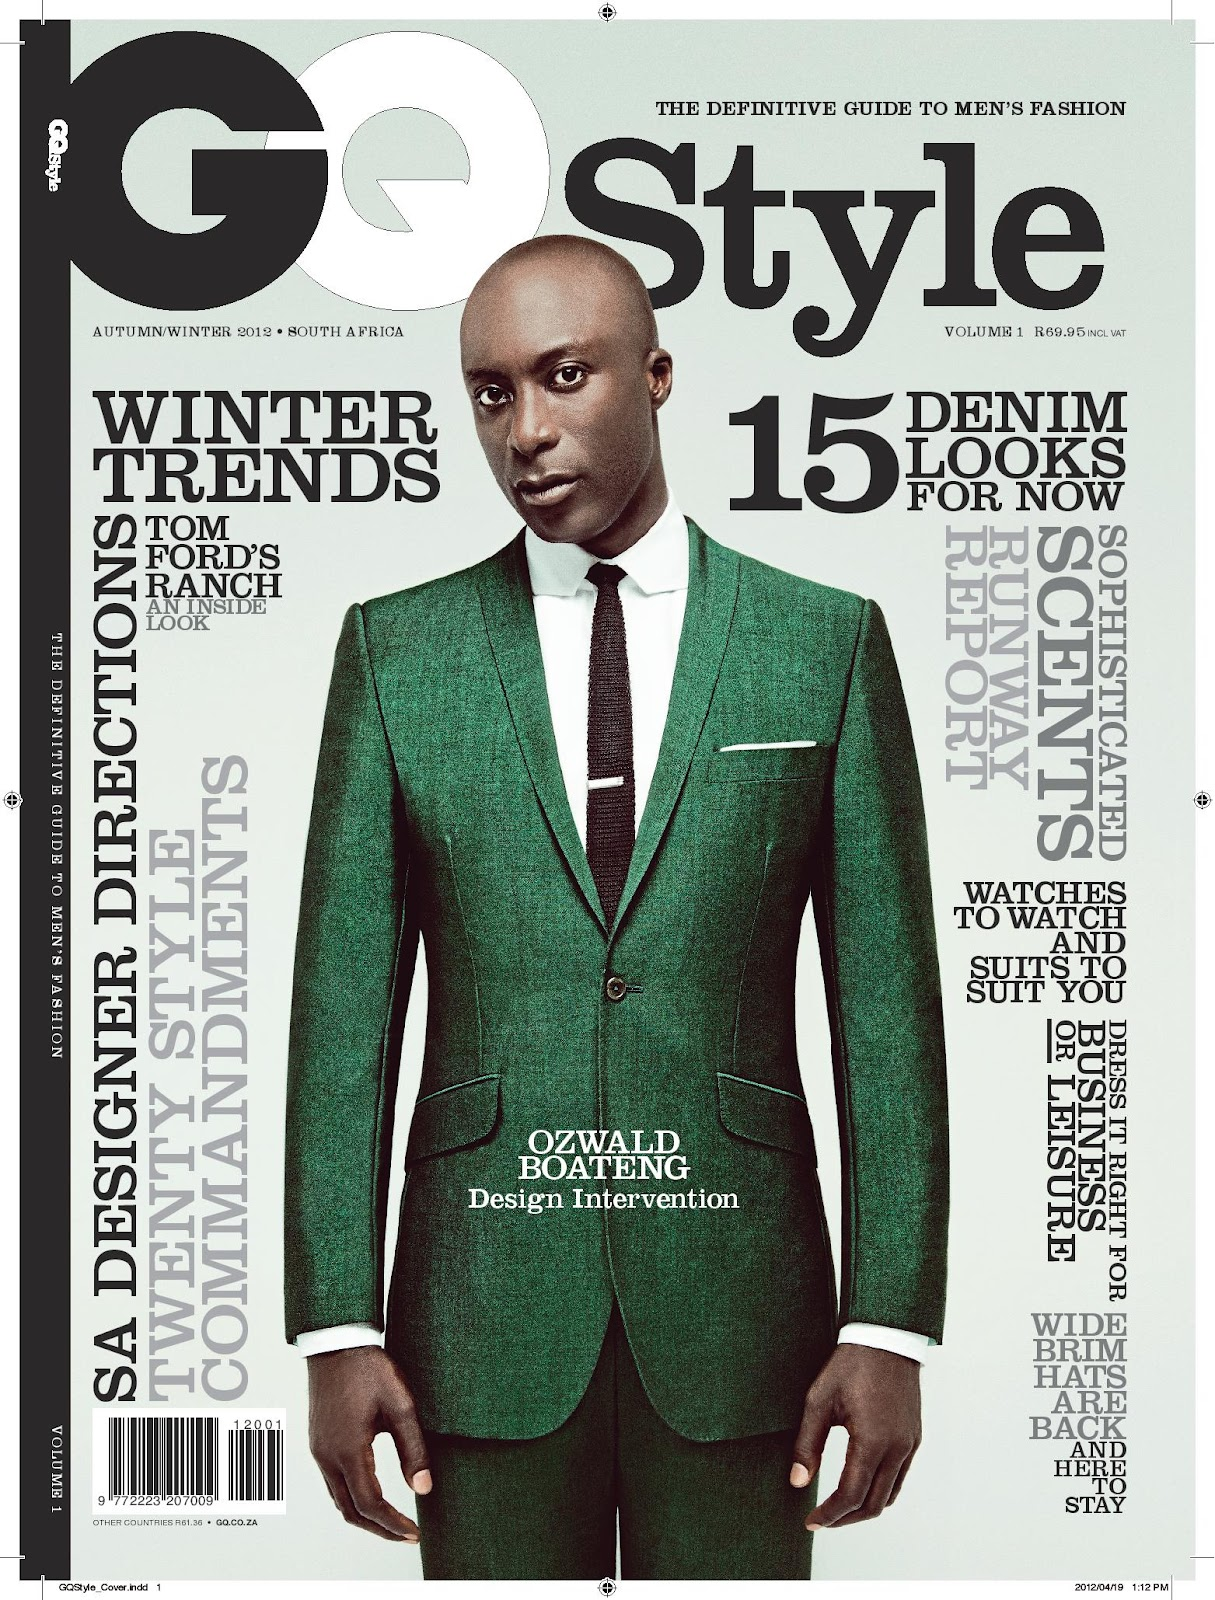 Trends Beyond Threads Gq Style Launches In South Africa